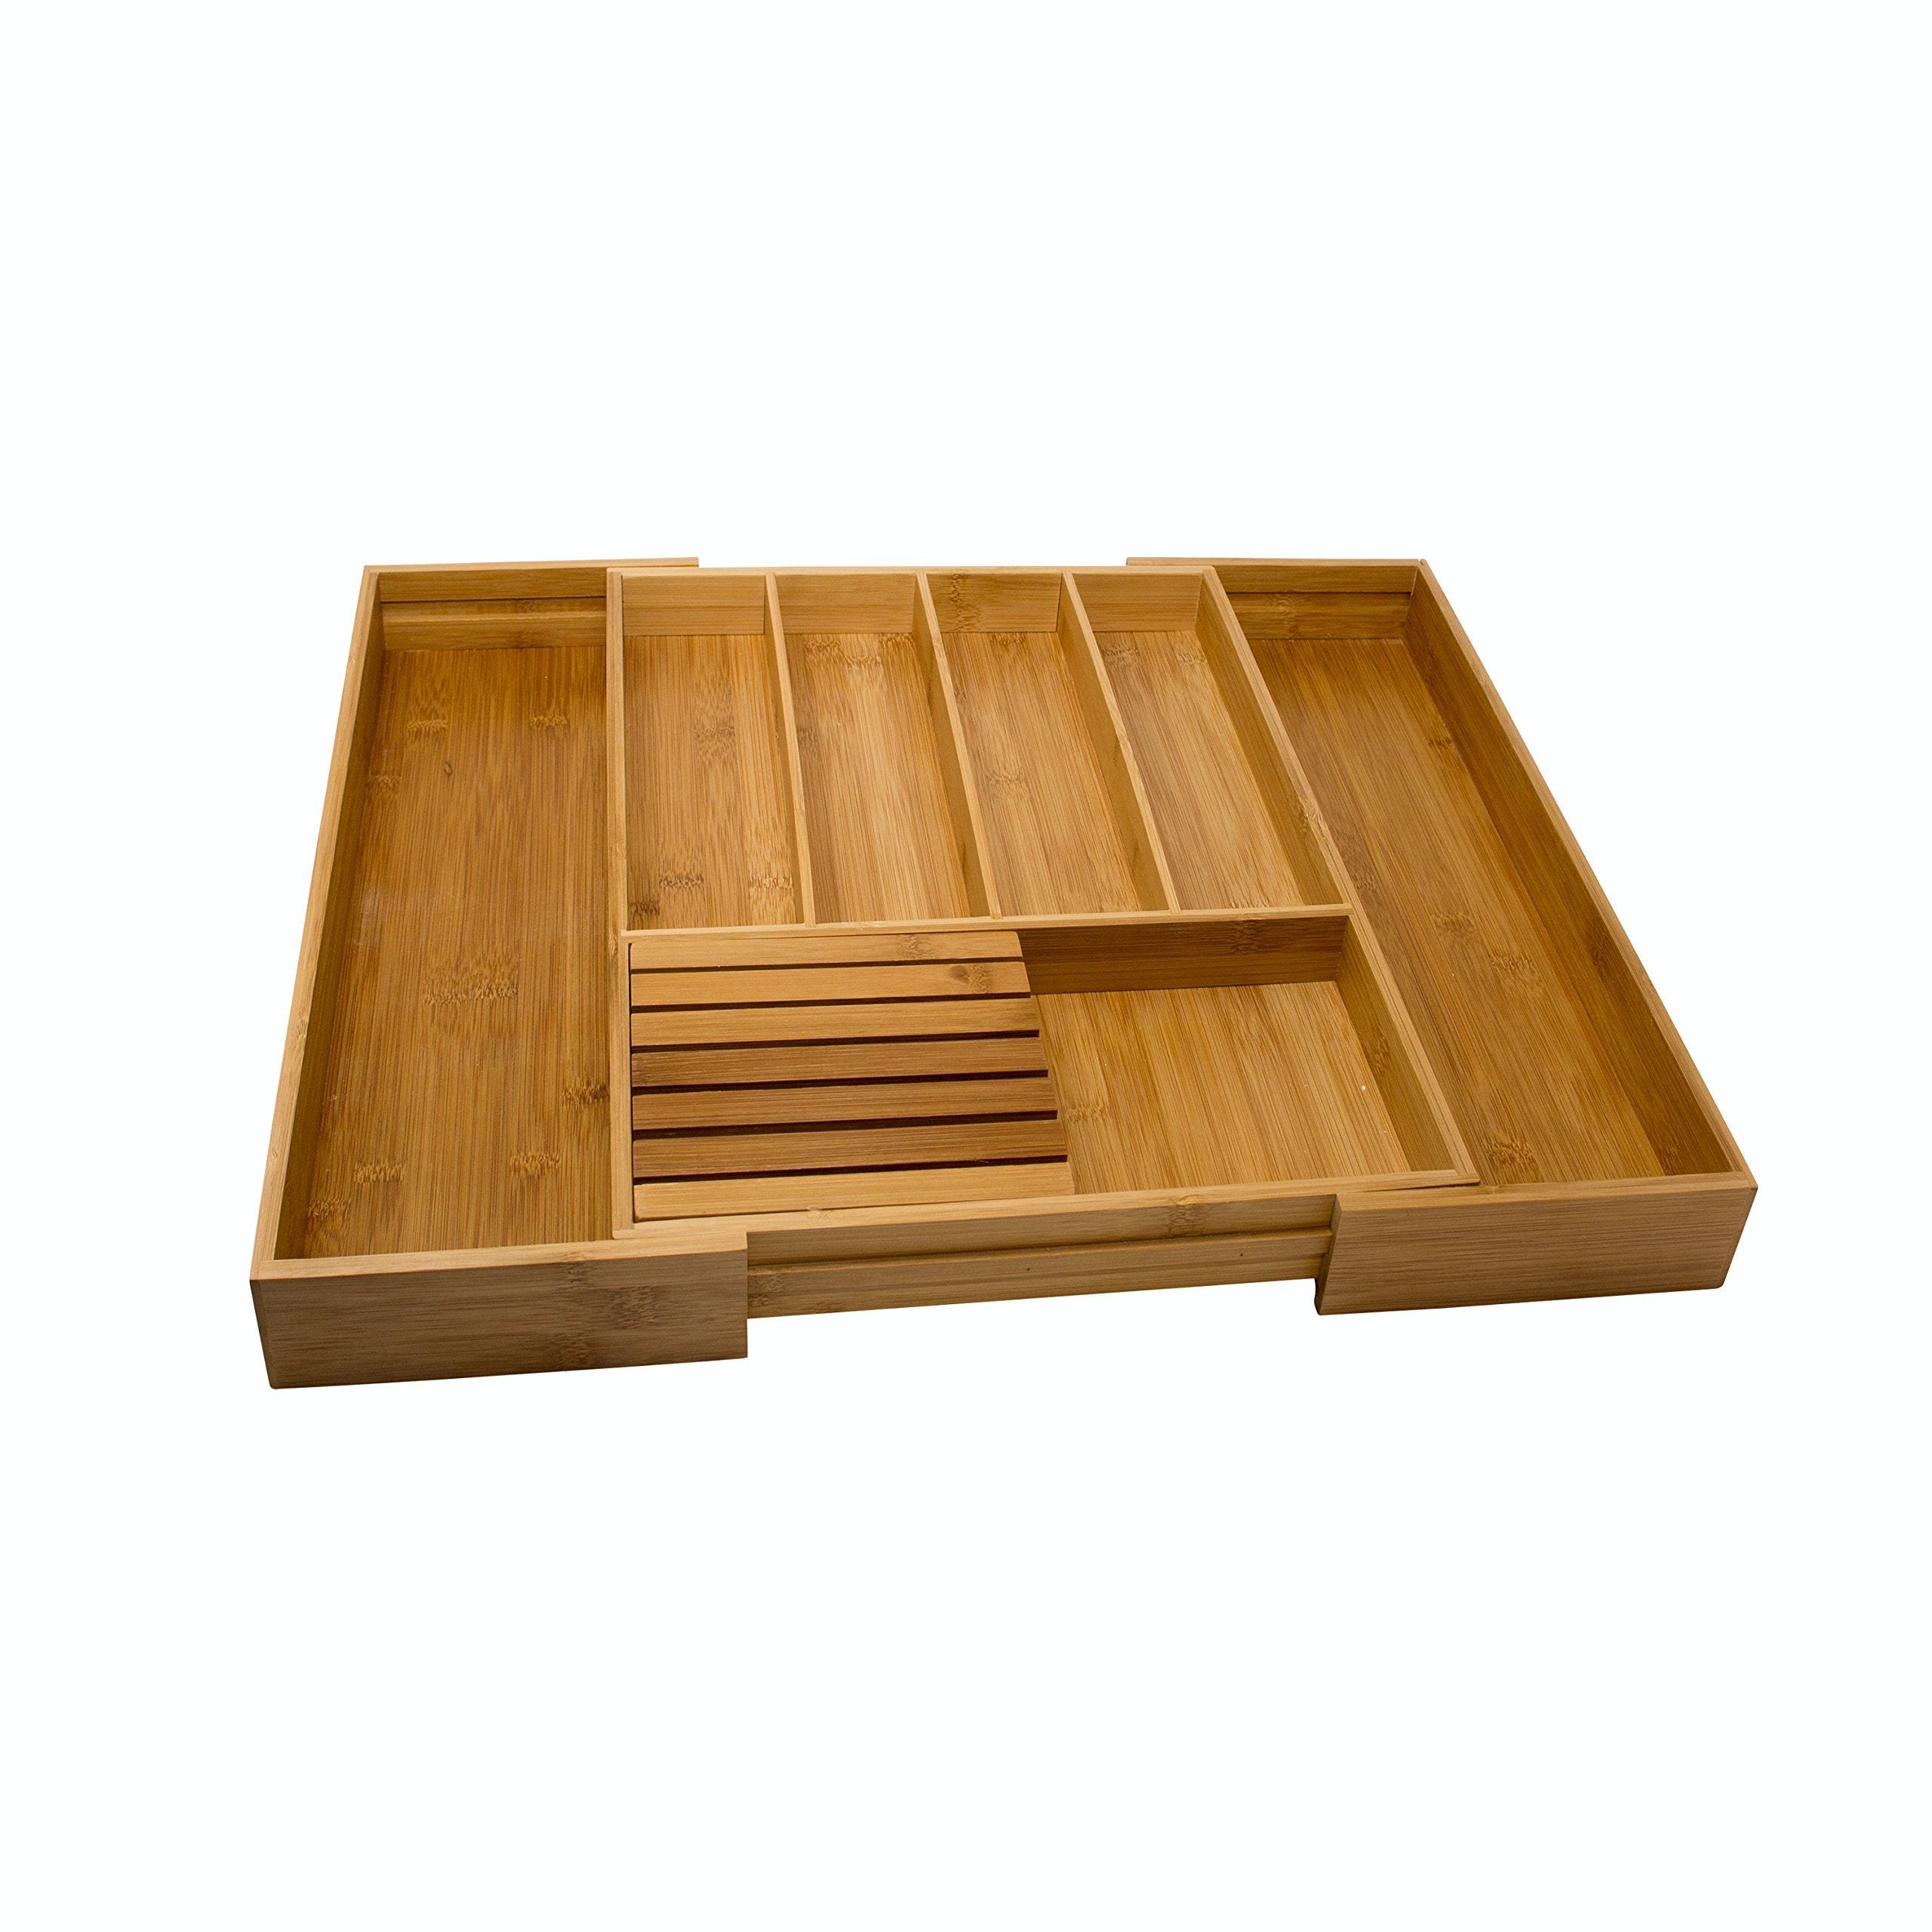 Get vivaware expandable bamboo kitchen drawer organizer 6 roomy spaces and knife block 100 bamboo eco friendly expandable adjustable utensil trays